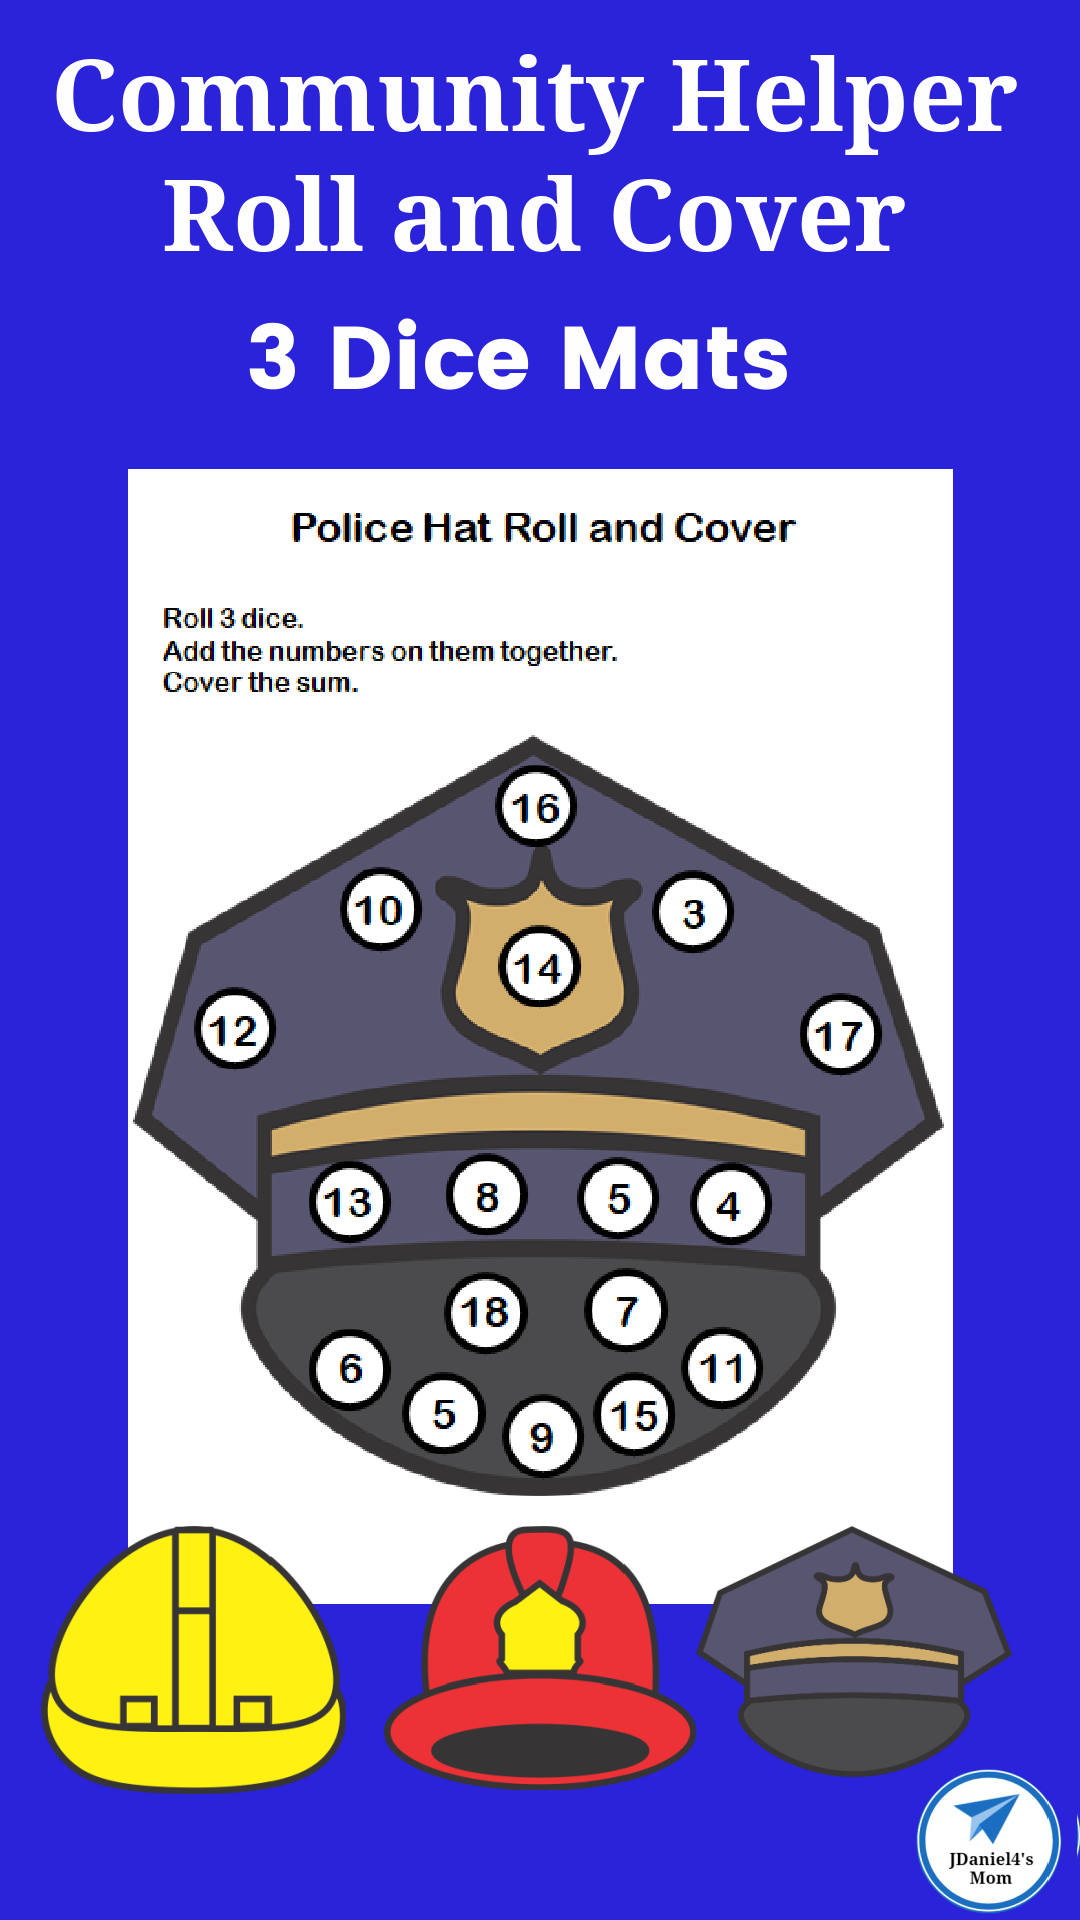 Community Helper Roll and Cover 2 Dice Mats